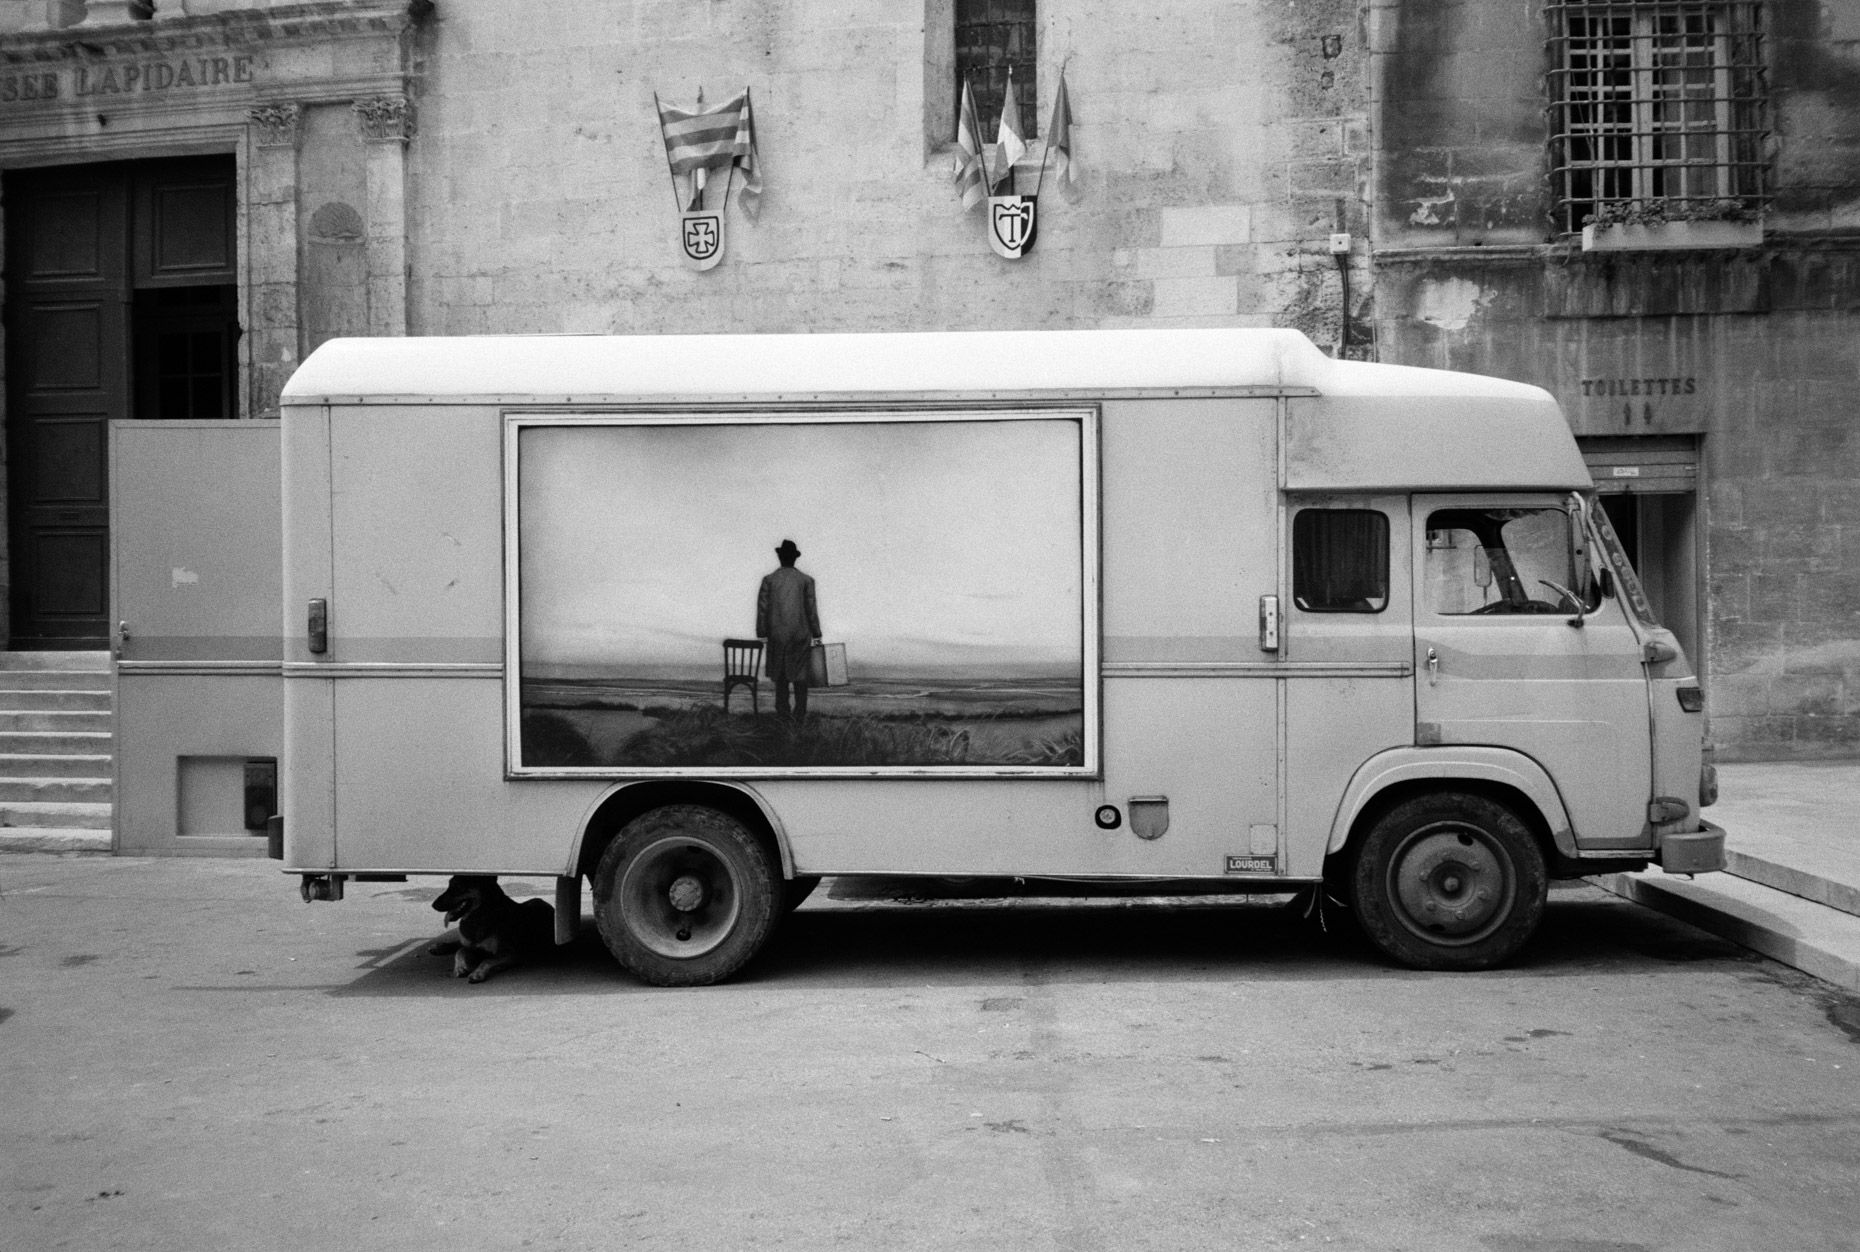 Painted Truck, Place de la Republique, Arles